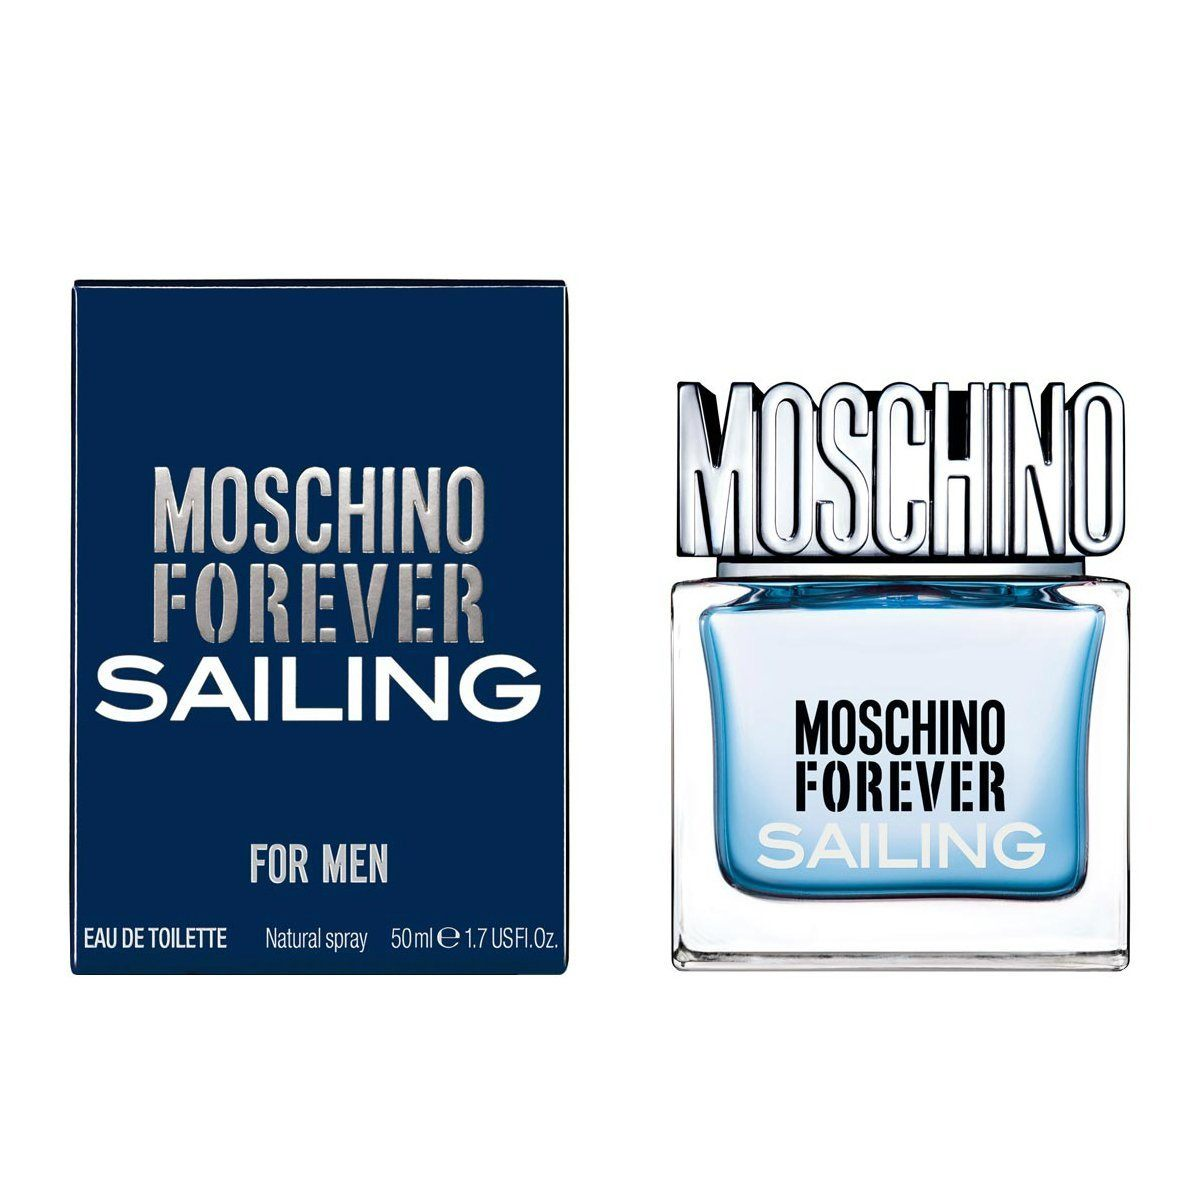 Moschino Forever Sailing 50ml